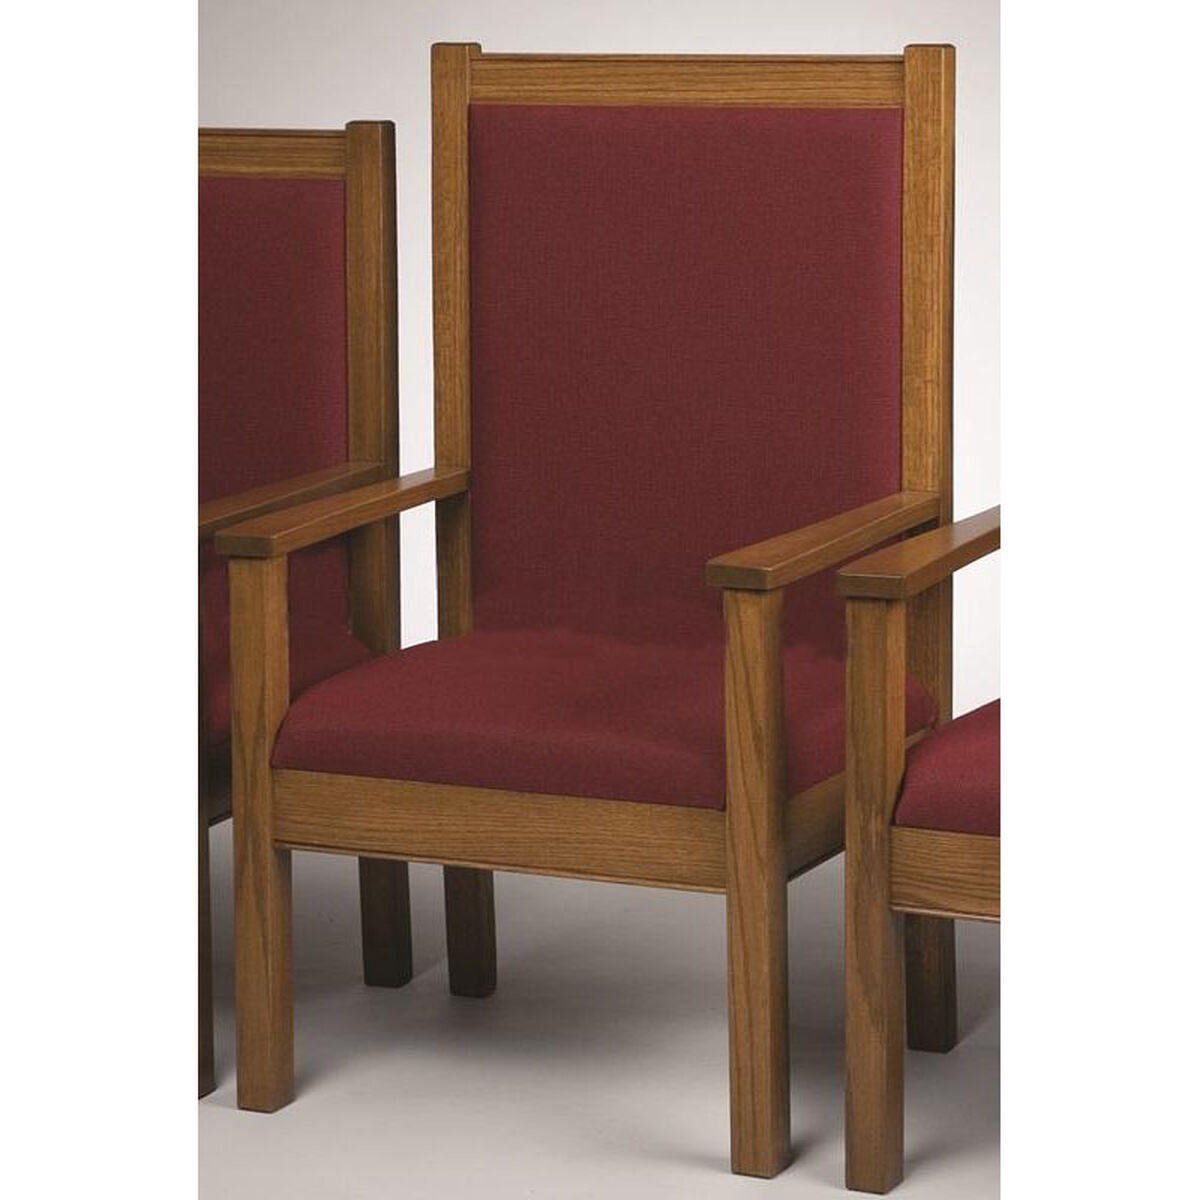 Stained Red Oak Upholstered Center Pulpit Chair